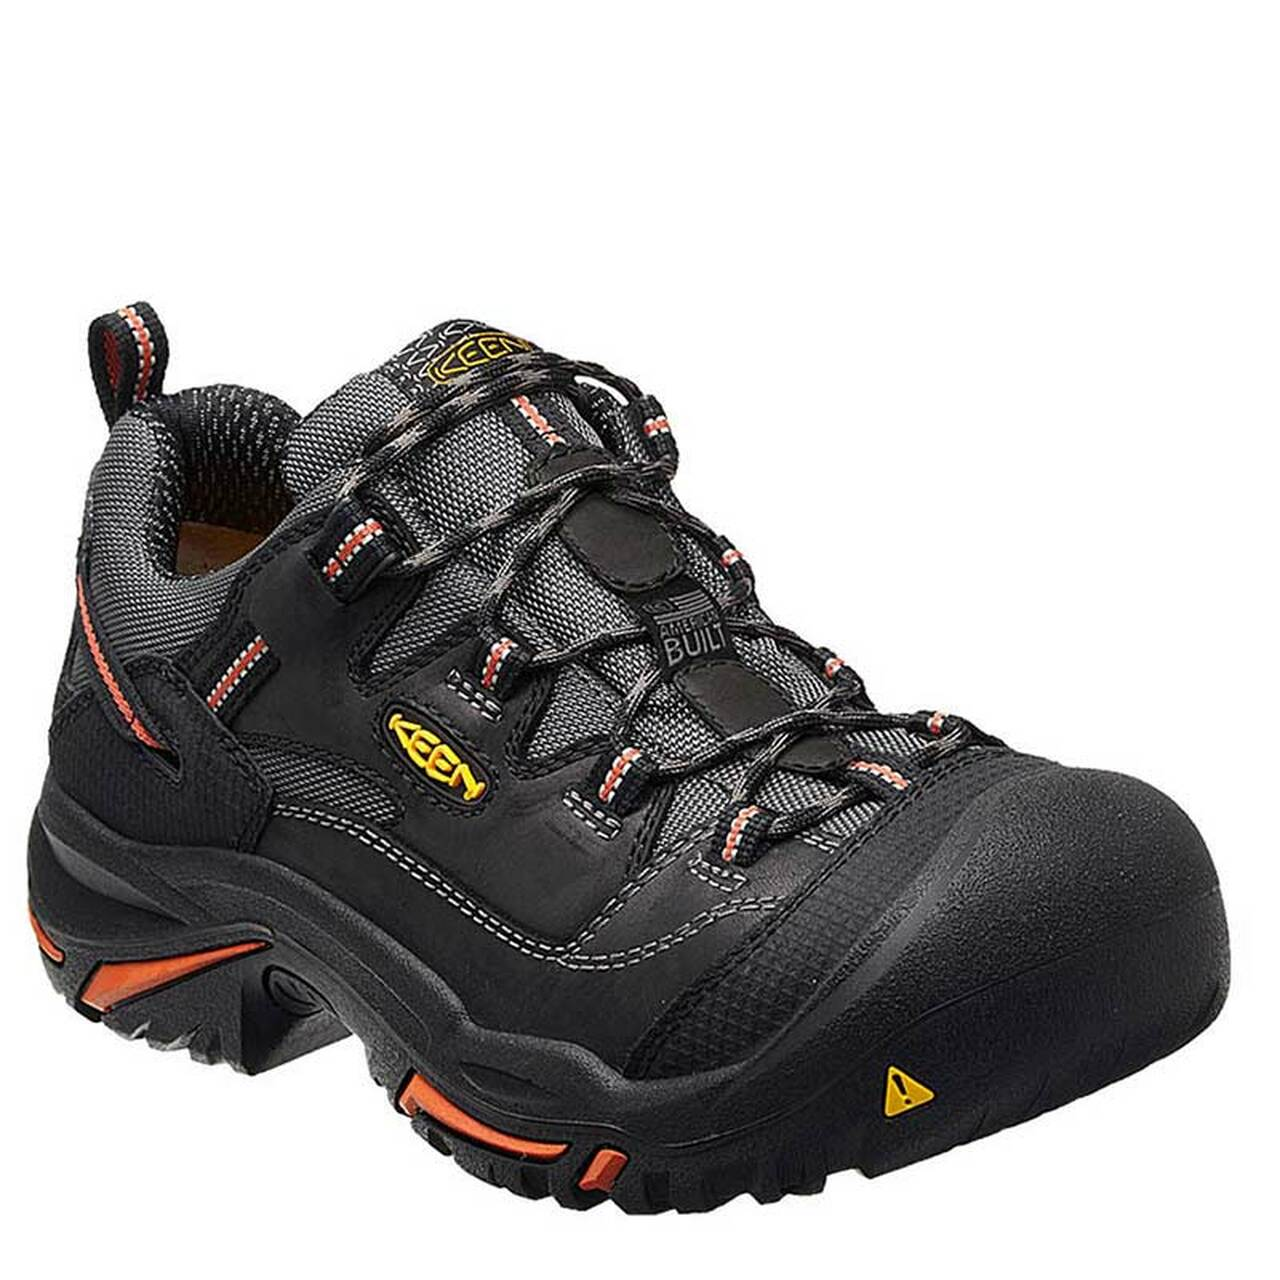 b211c40951d Keen Utility 1011244 USA BRADDOCK Steel Toe Non-Insulated Work Shoes